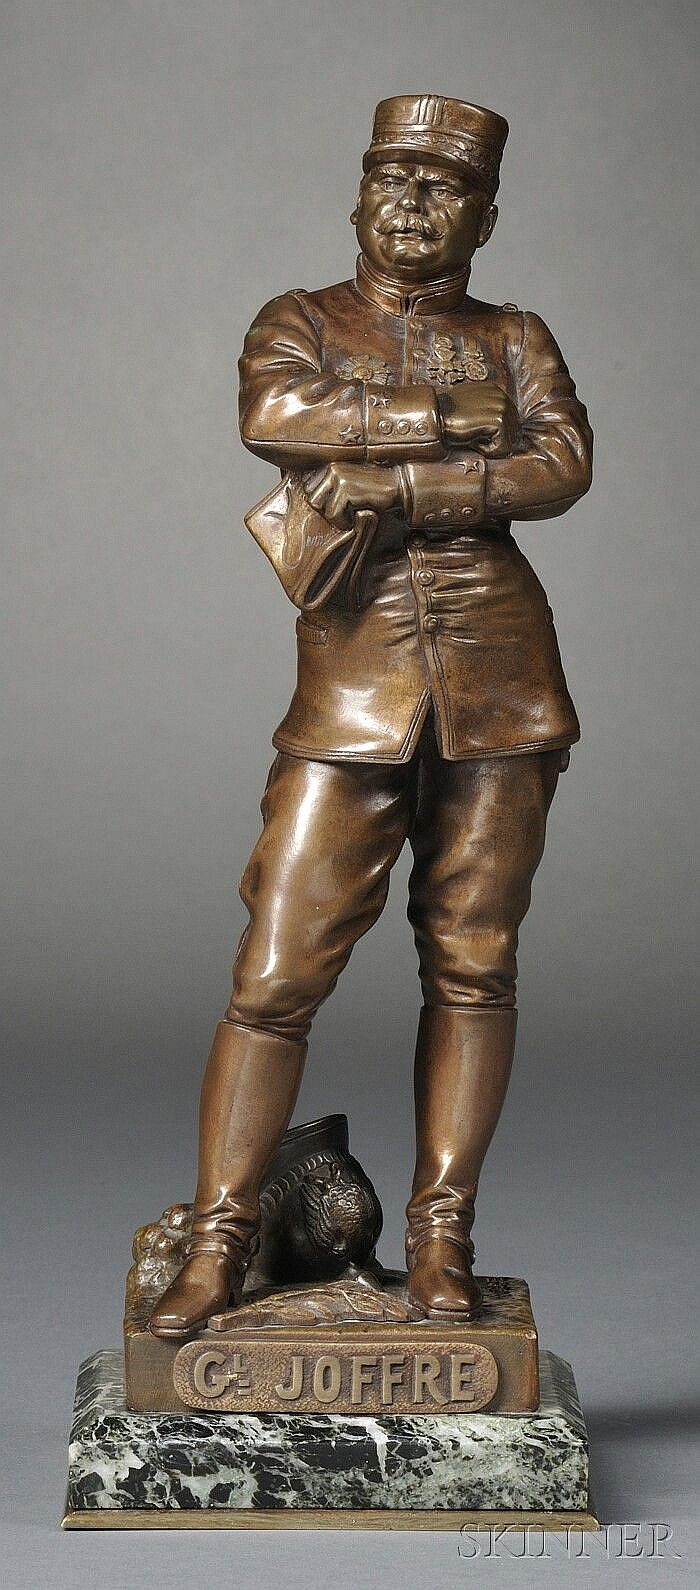 Henri Fugère (French, 1872-1944), Gilt Bronze Figure of French General Joseph Joffre,, , the standing figure with arms crossed and hold